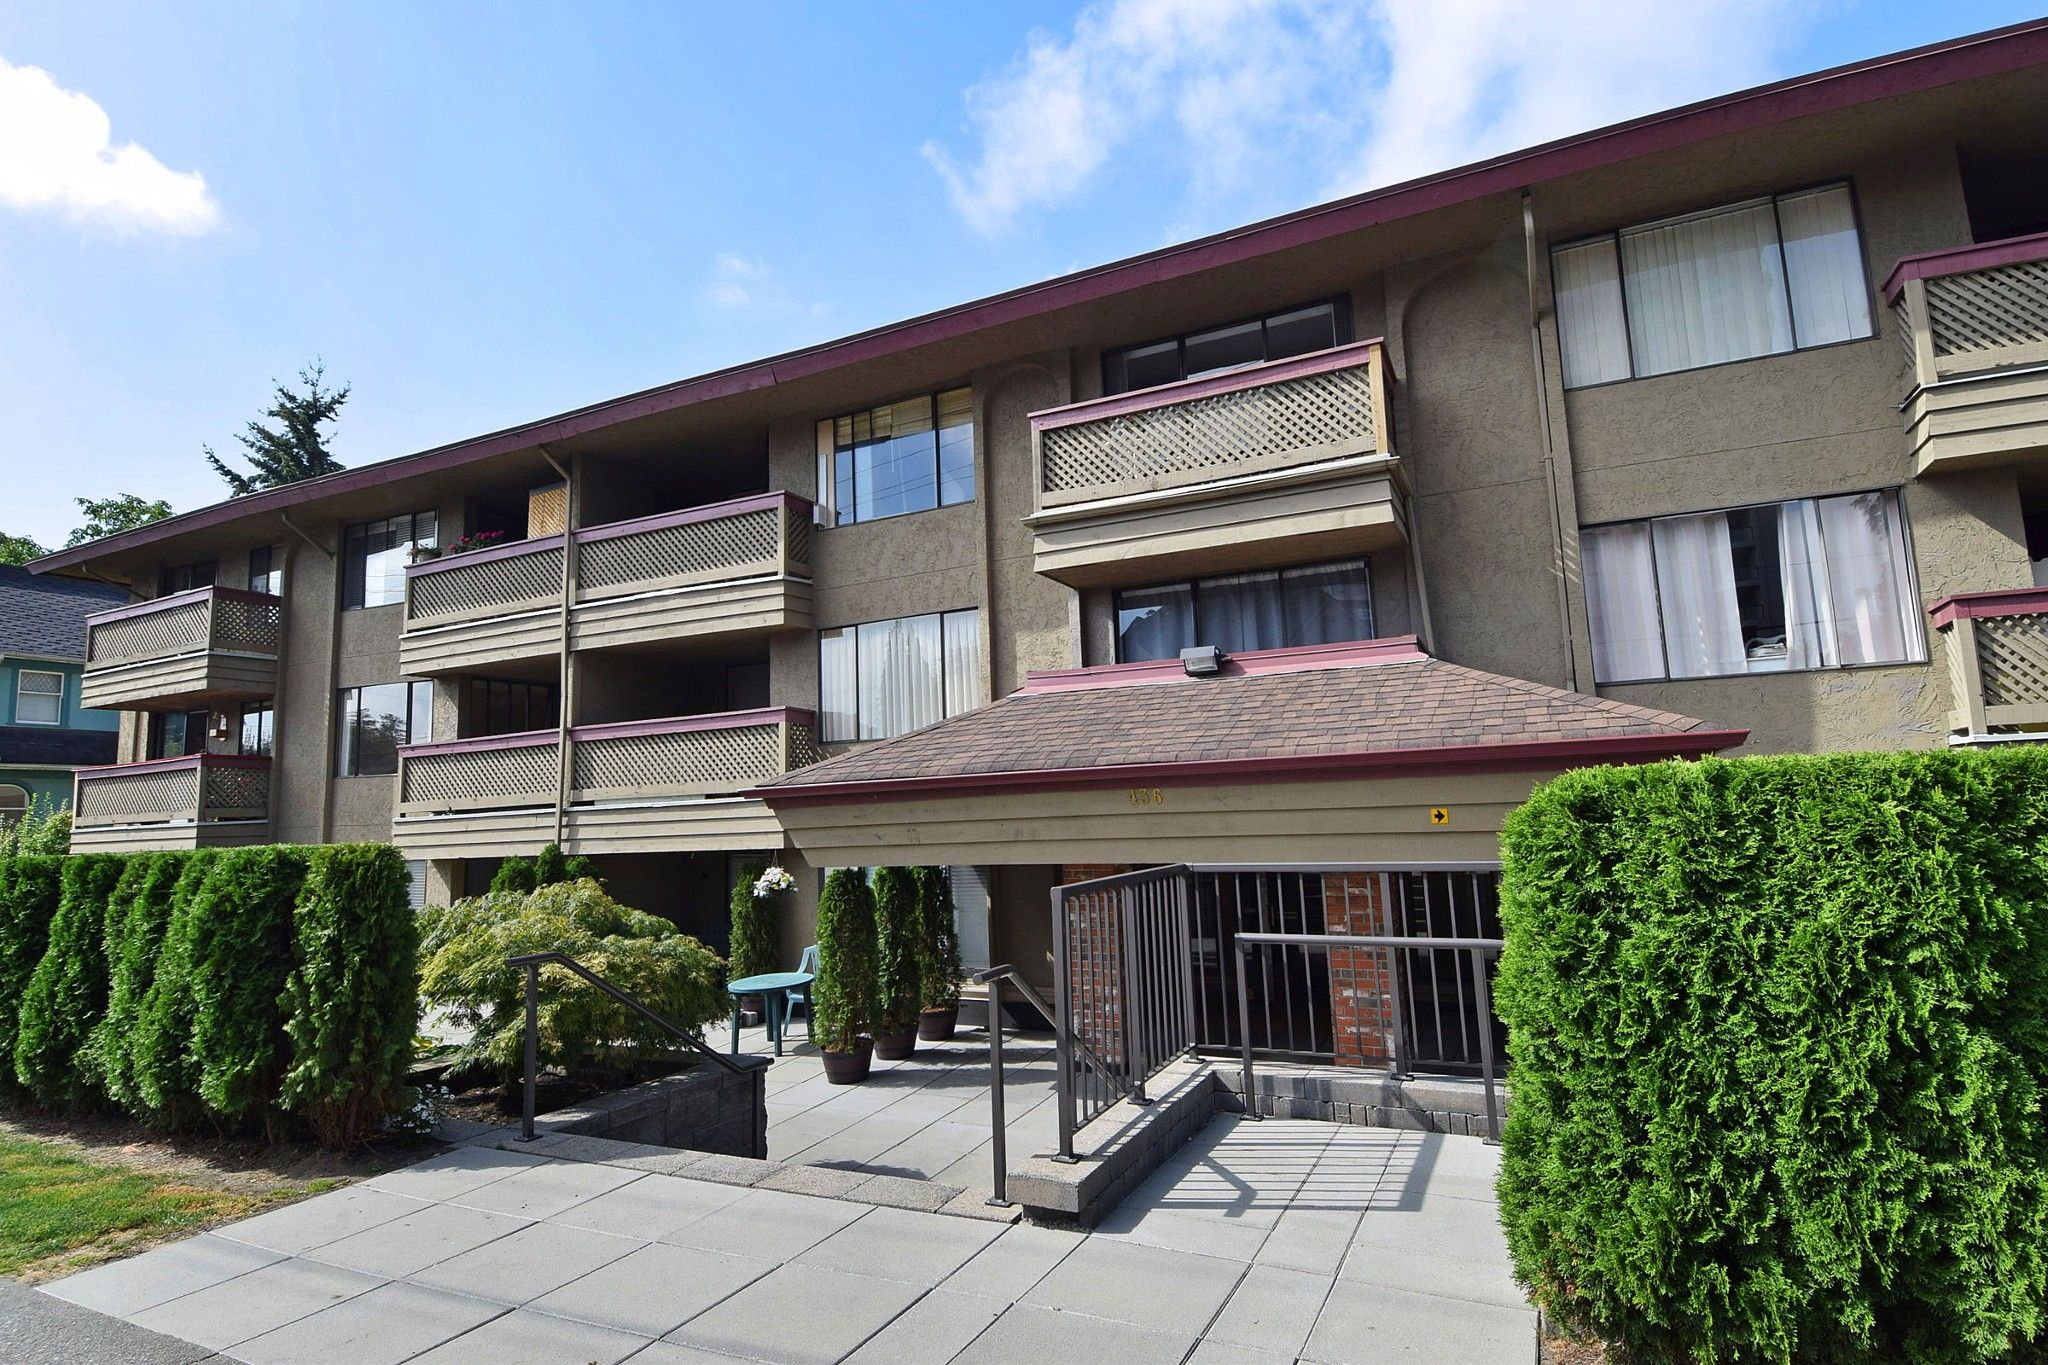 """Main Photo: 303 436 SEVENTH Street in New Westminster: Uptown NW Condo for sale in """"Regency Court"""" : MLS®# R2263050"""